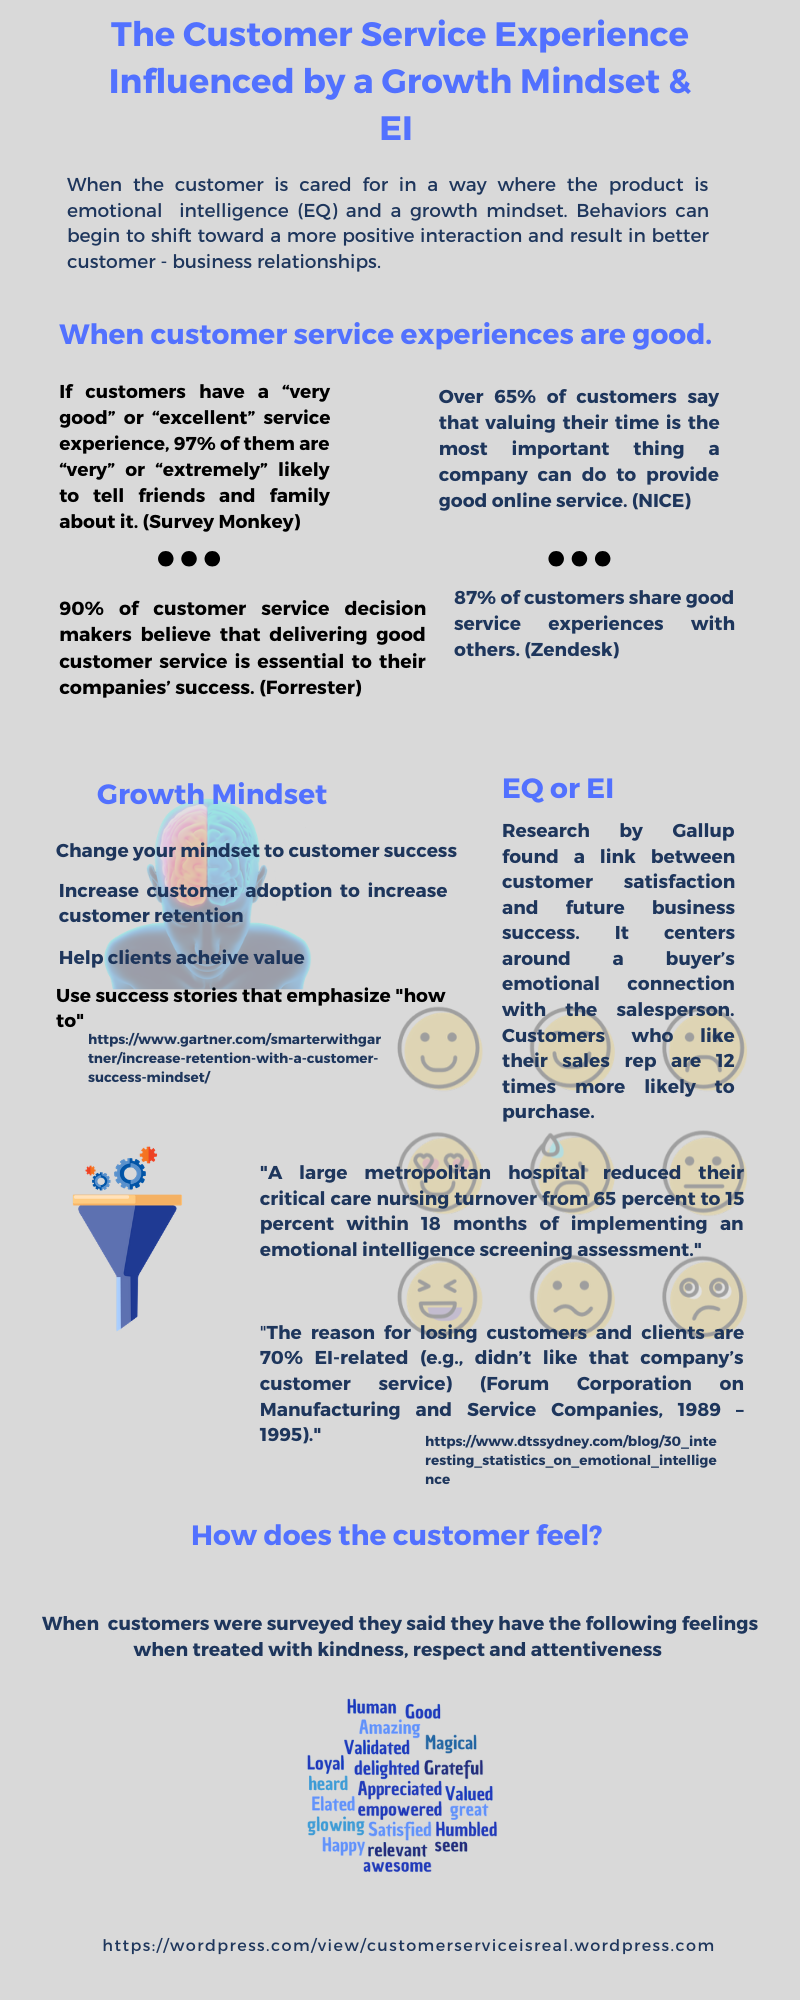 EQ_EI and the Growth Mindset